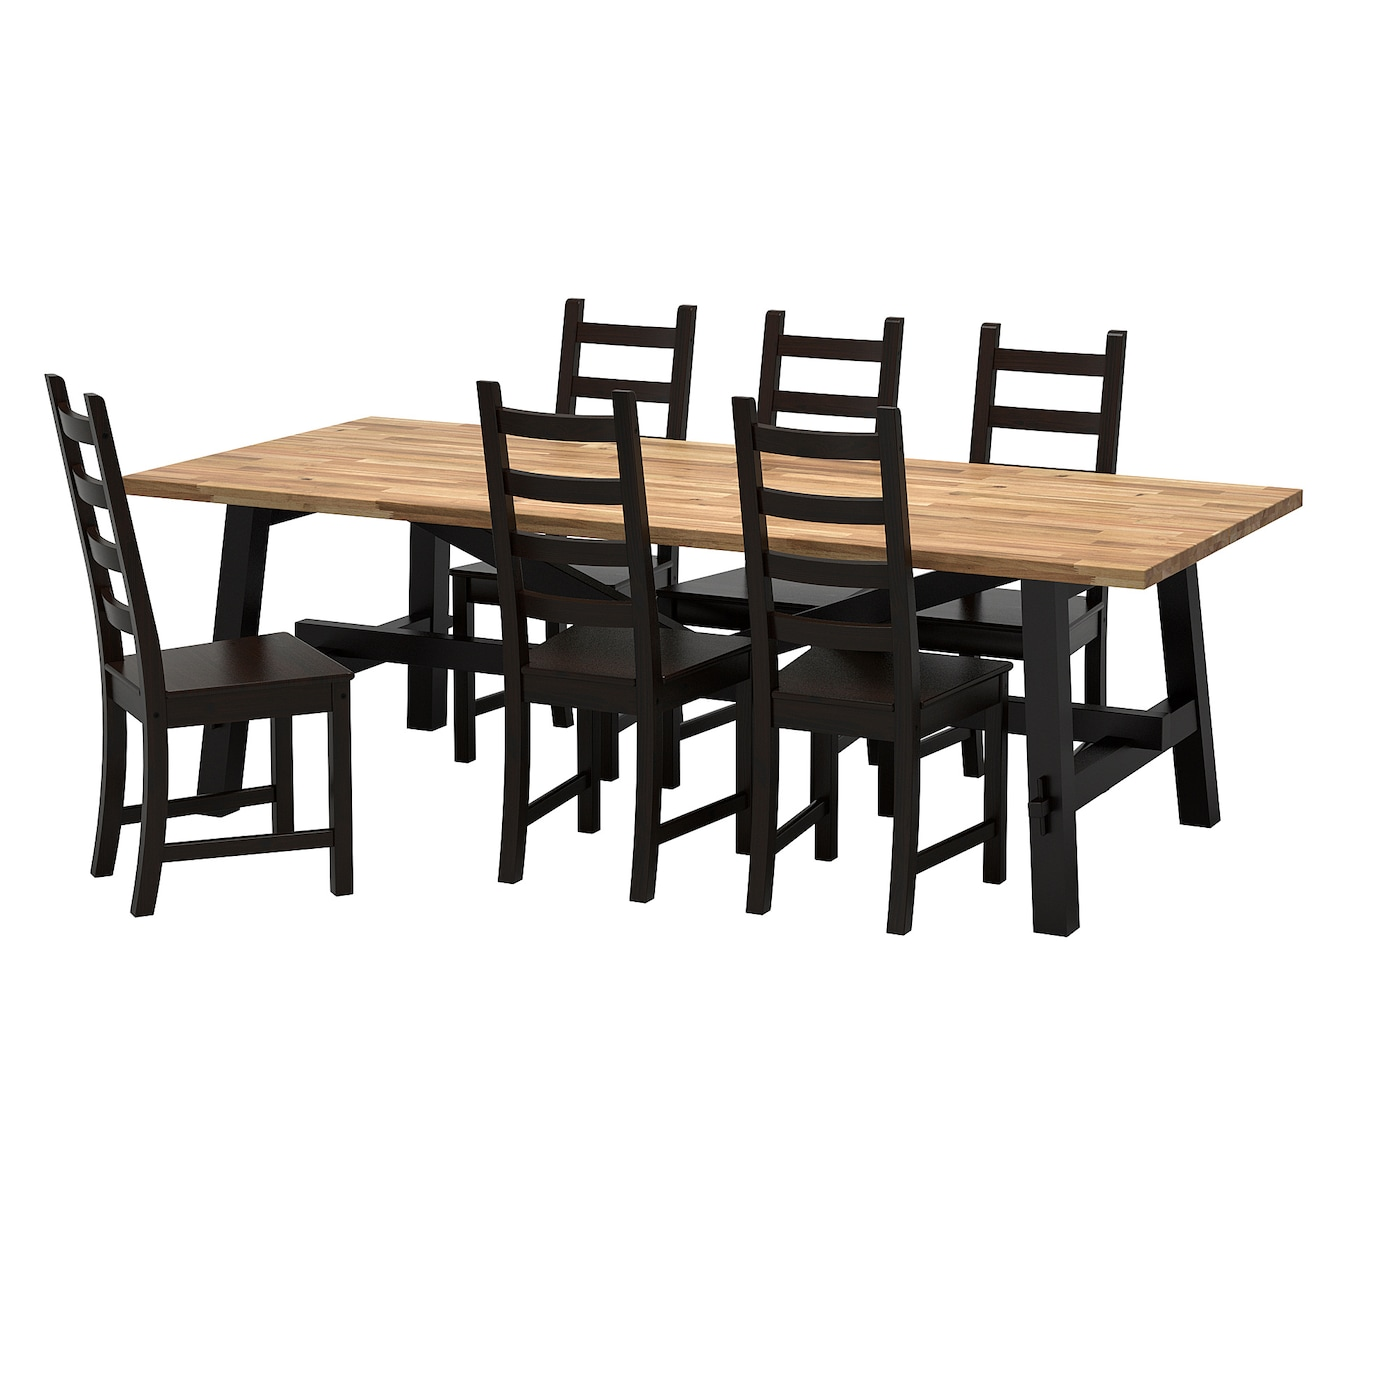 IKEA KAUSTBY/SKOGSTA table and 6 chairs